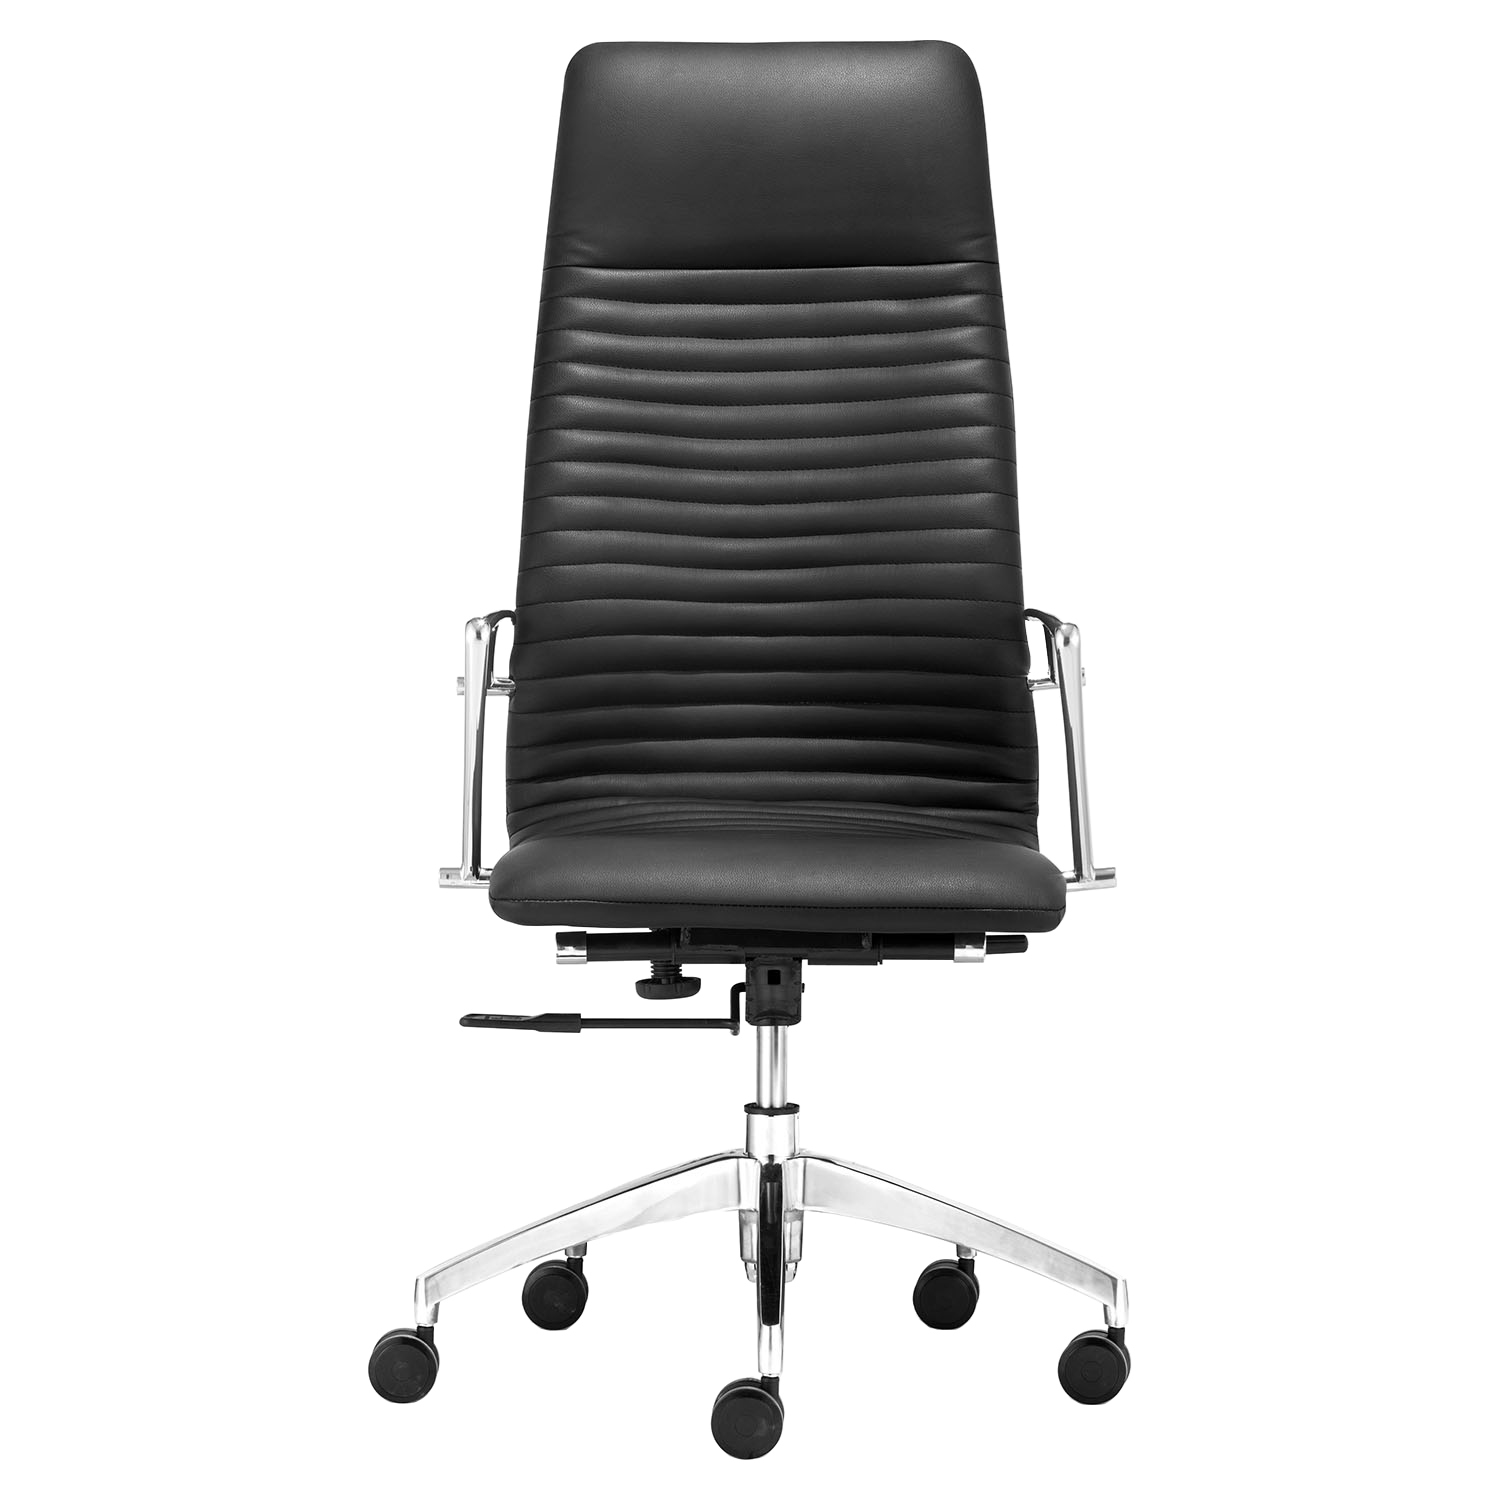 Lion High Back Office Chair - Black